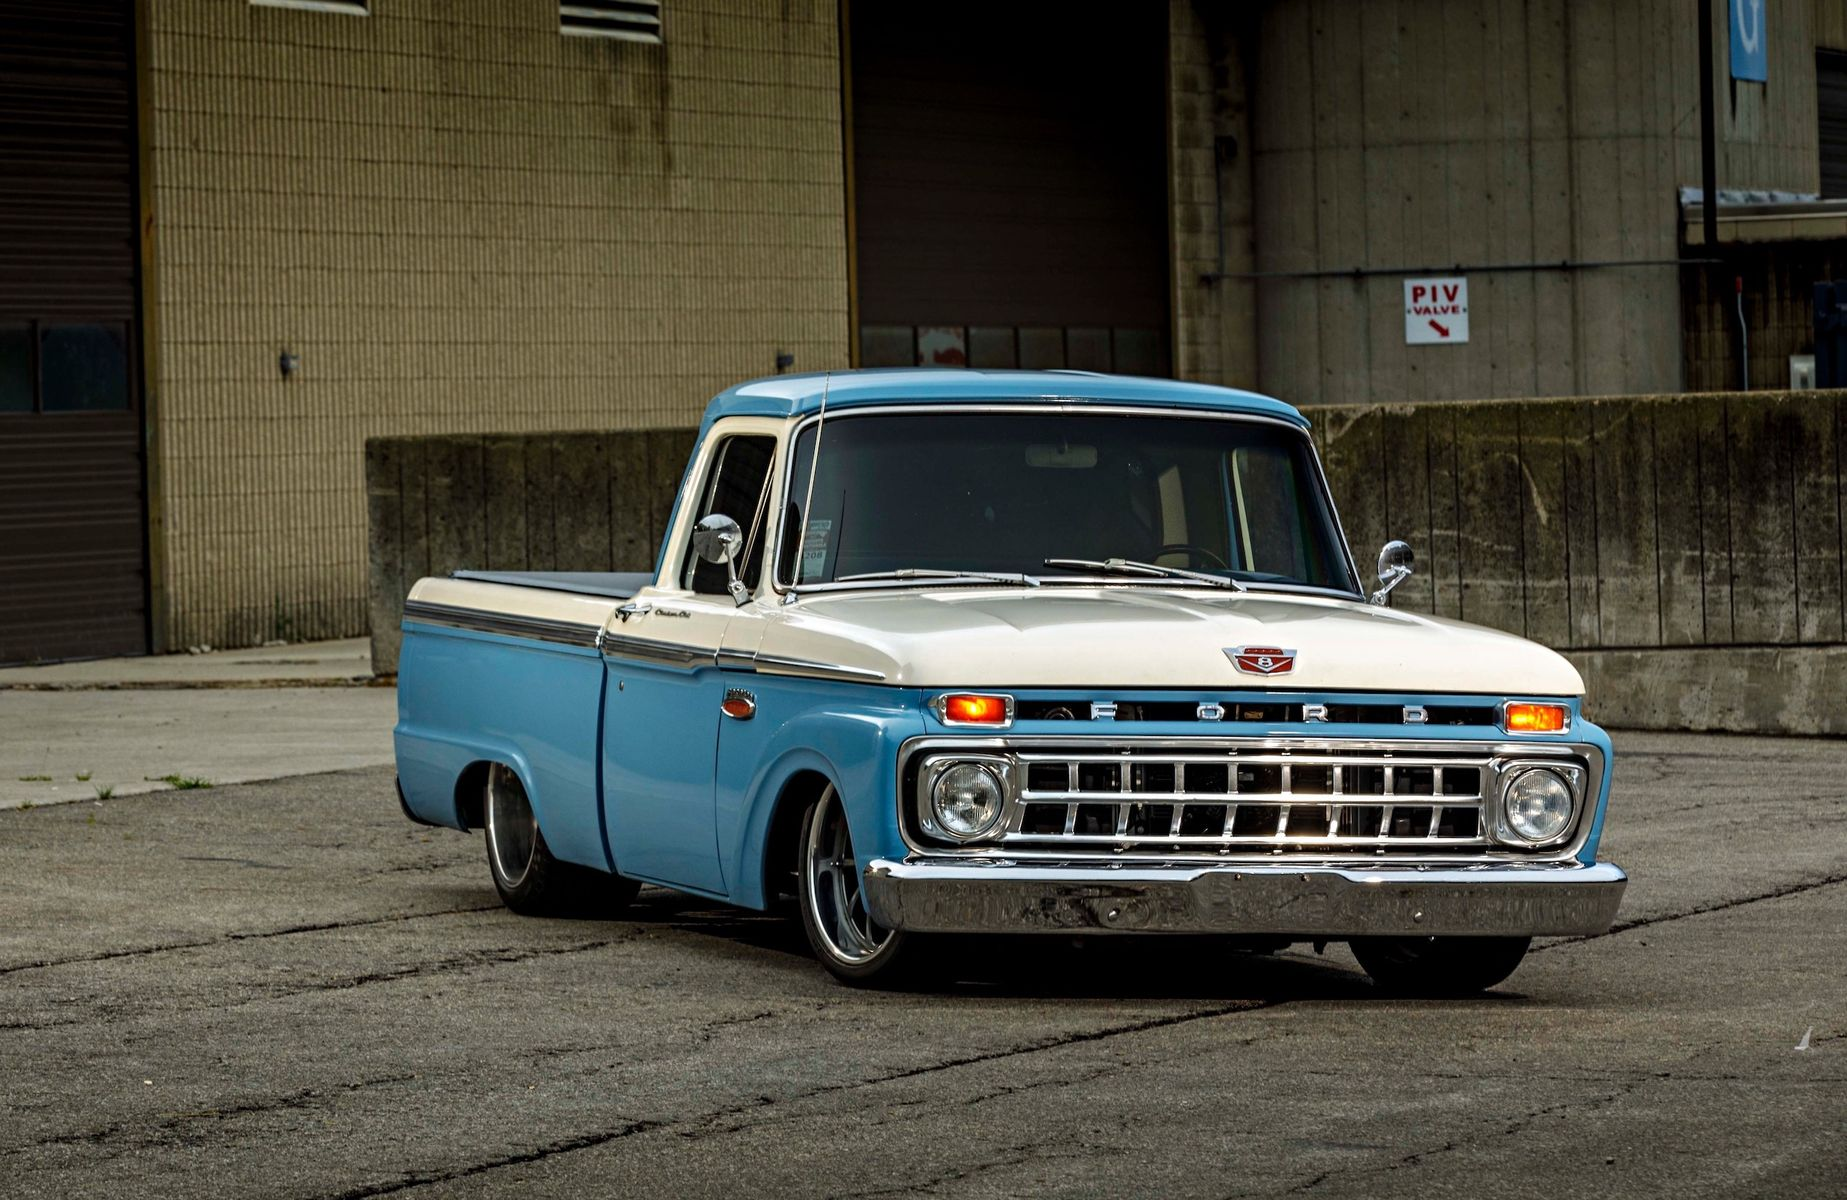 1965 Ford F-150 | Jimmy Butler's Big Oak Garage Ford F-100 on Forgeline ZX3P Wheels